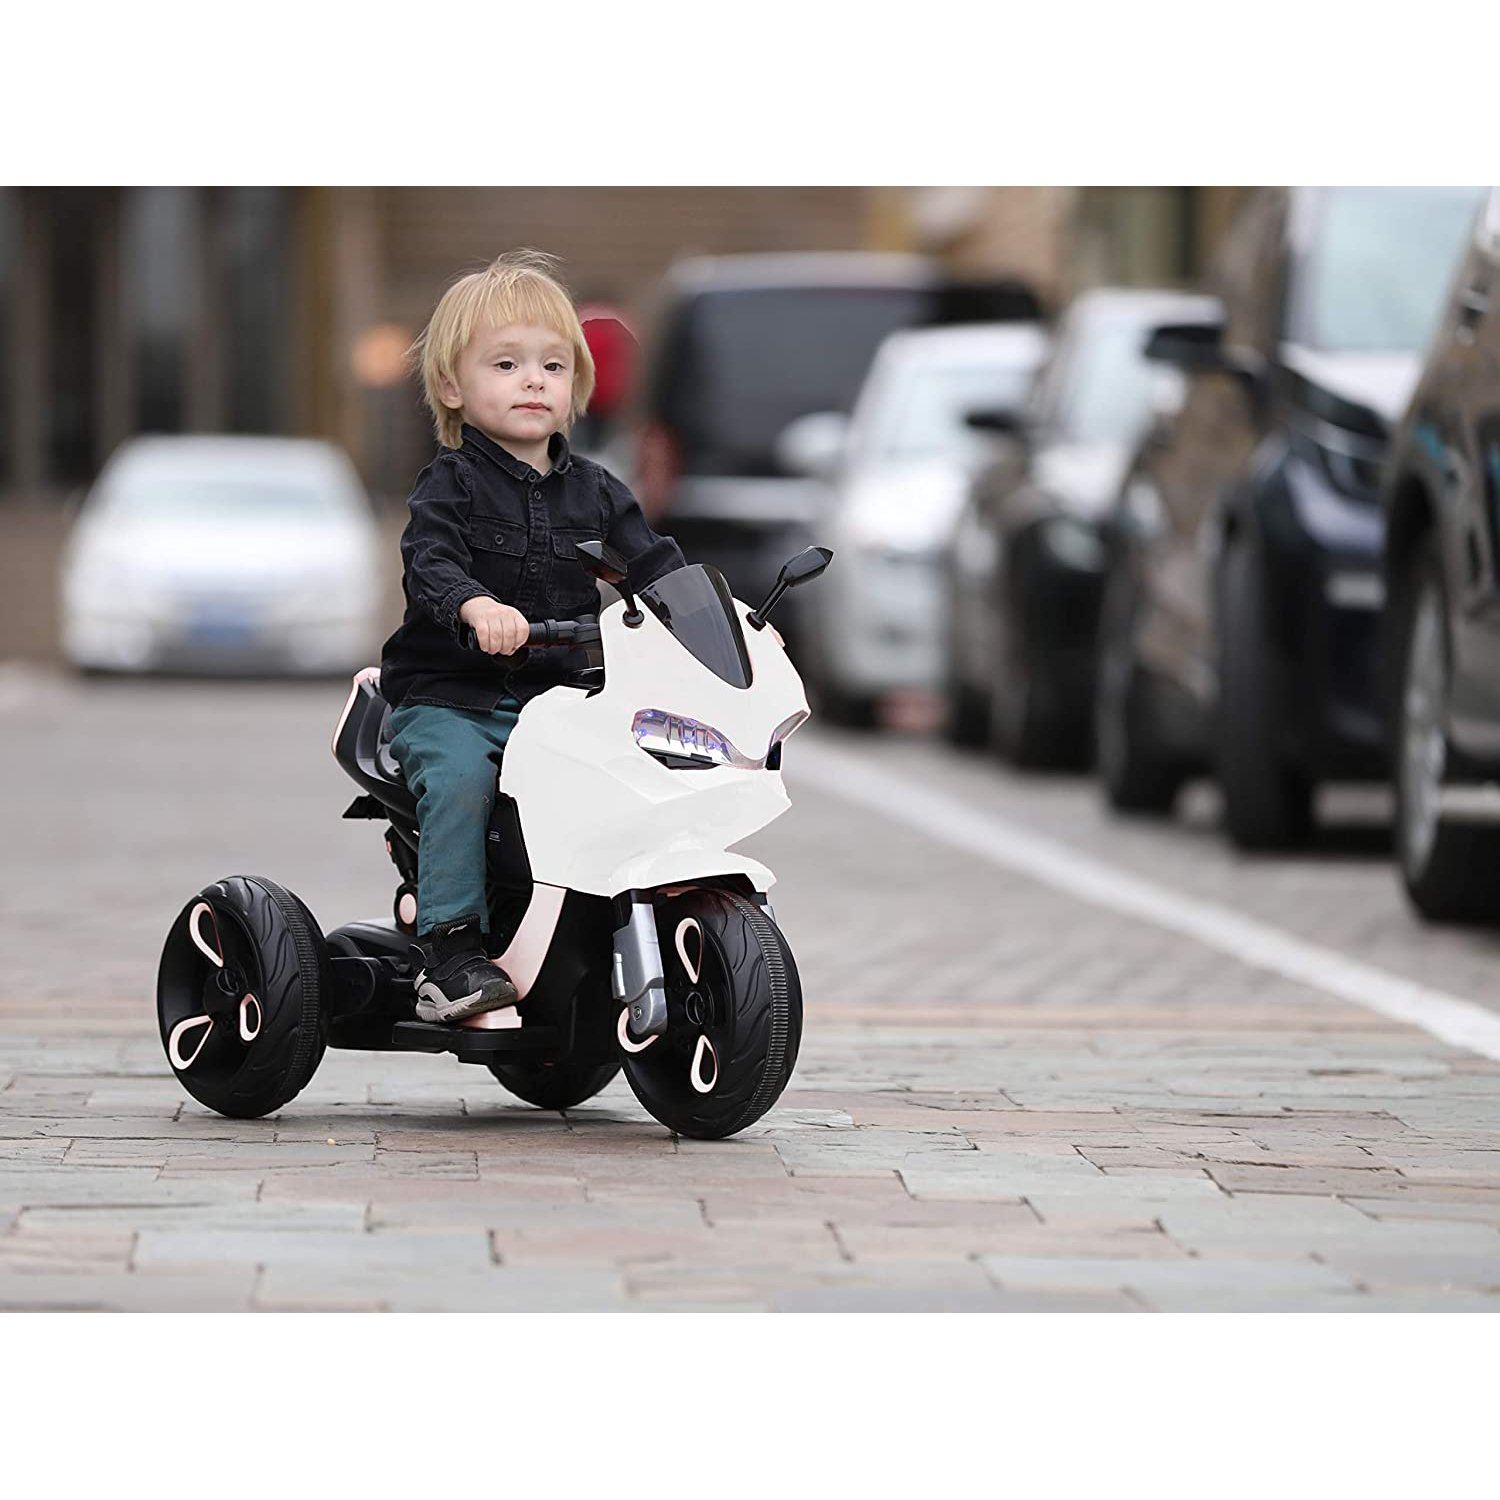 Growing kids and a guide on how to buy them an electric bike